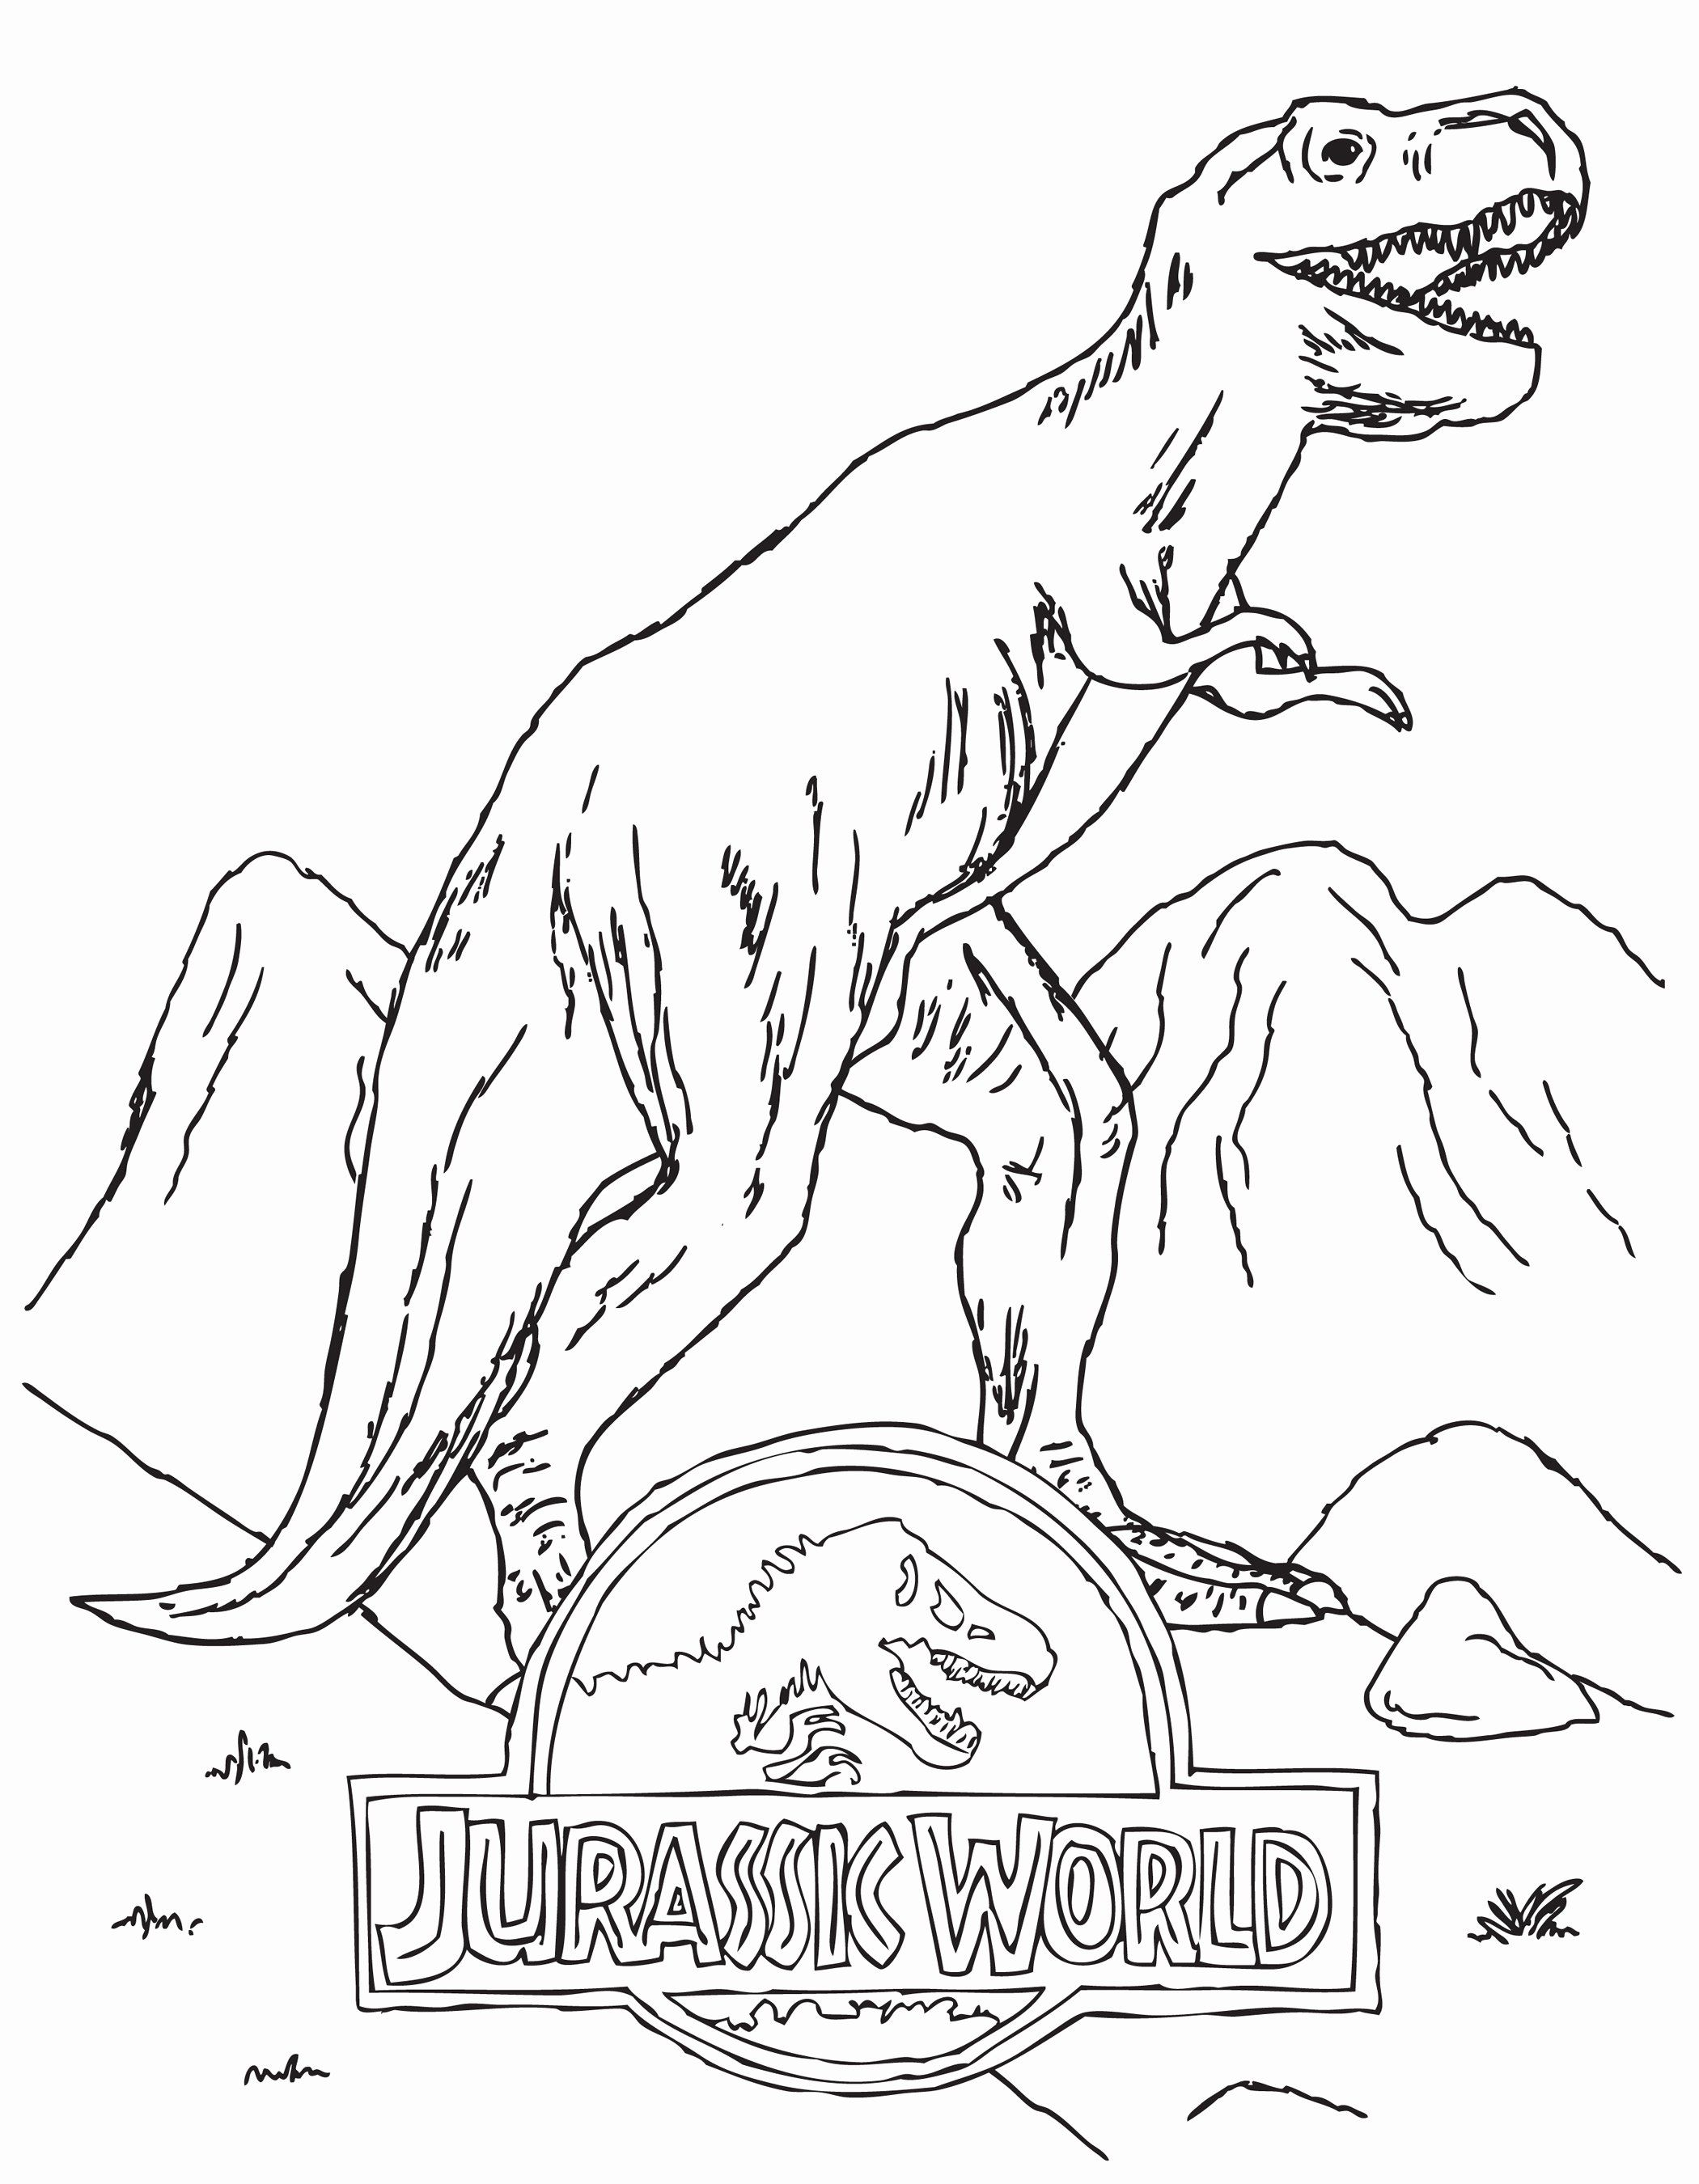 Jurassic World Coloring Page Awesome Jurassic World Dinosaur Coloring Pages In 2020 Dinosaur Coloring Pages Coloring Pages To Print Free Coloring Pages